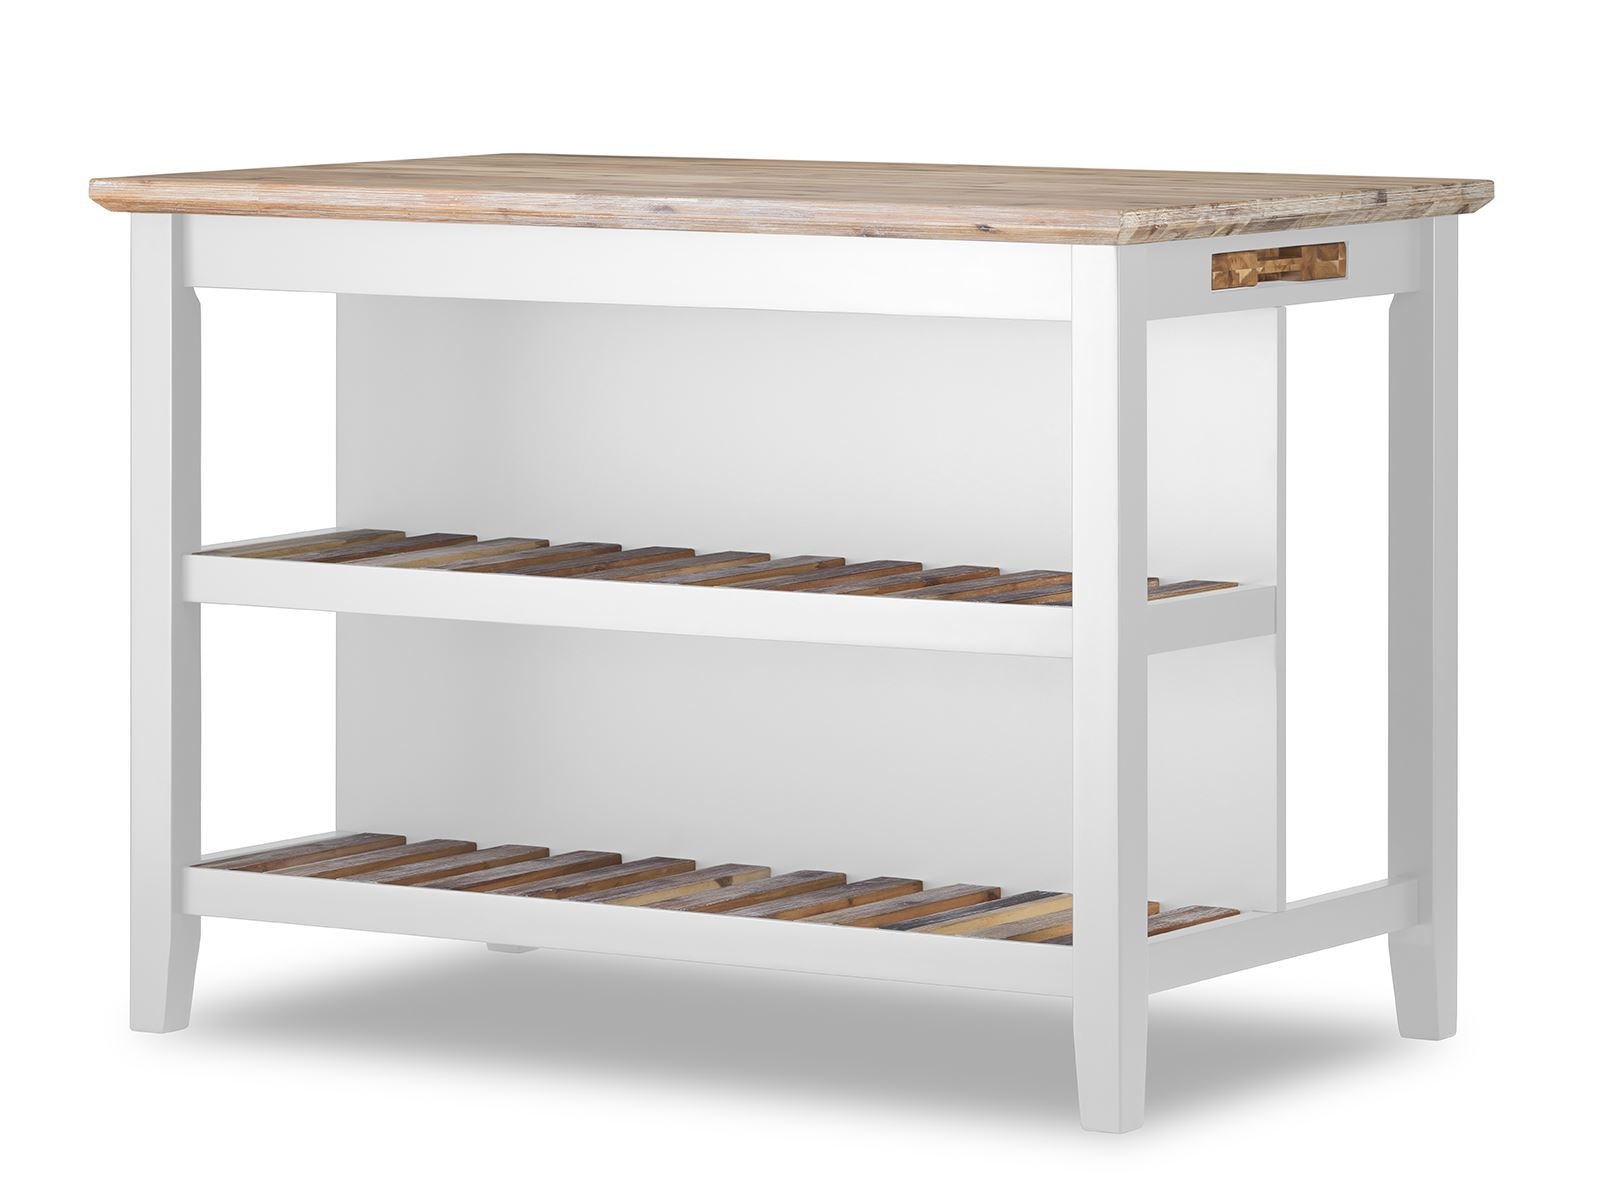 florence breakfast bar with 2 large shelves. small kitchen